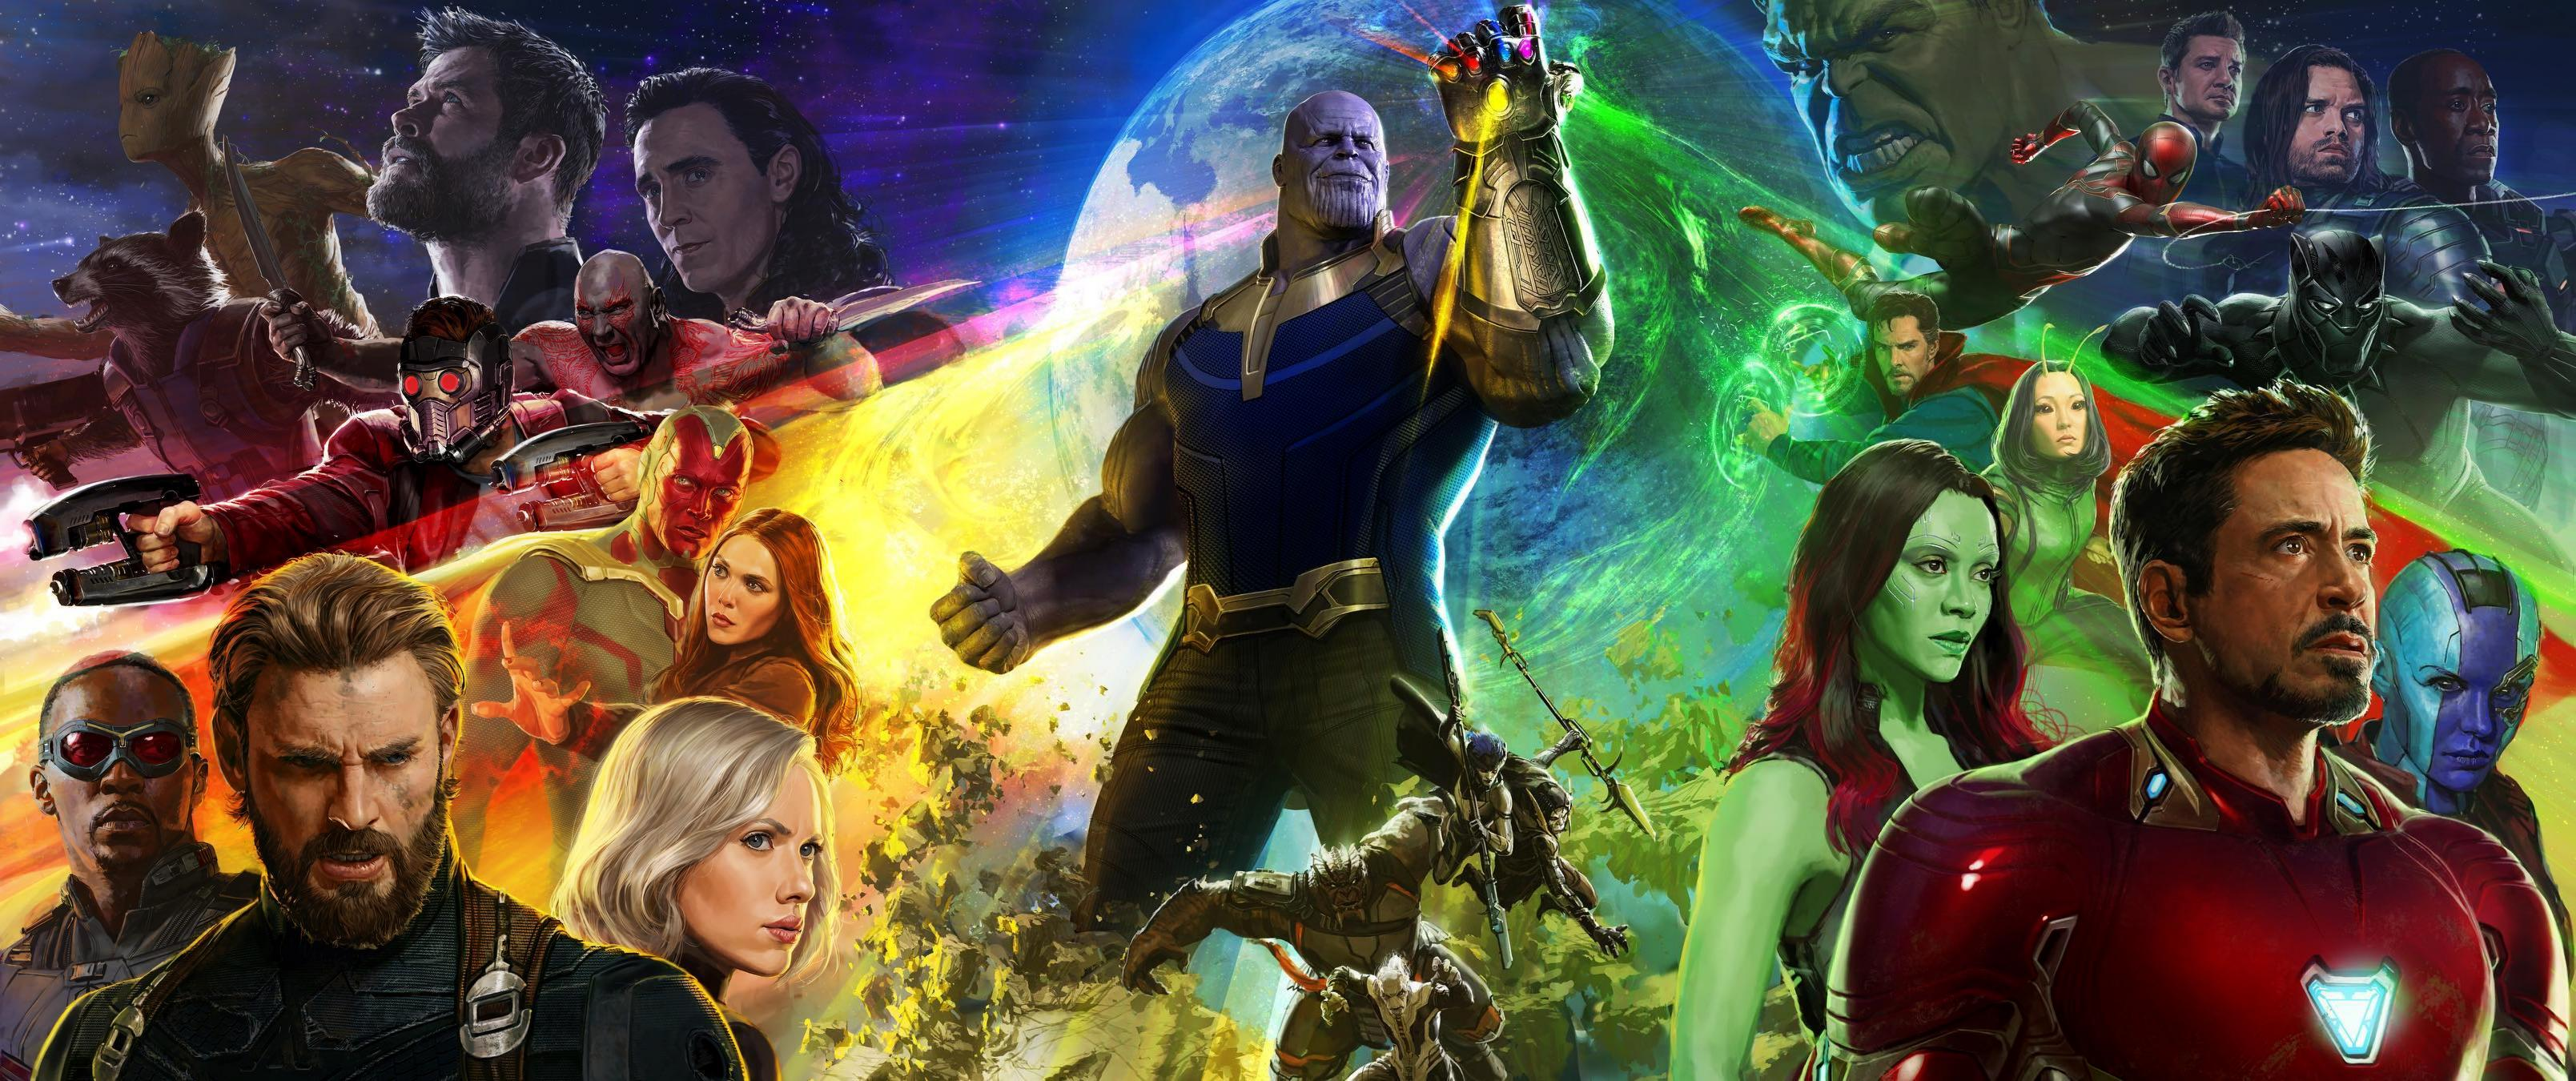 Avengers Infinity War 2018 4k, HD Movies, 4k Wallpapers, Images